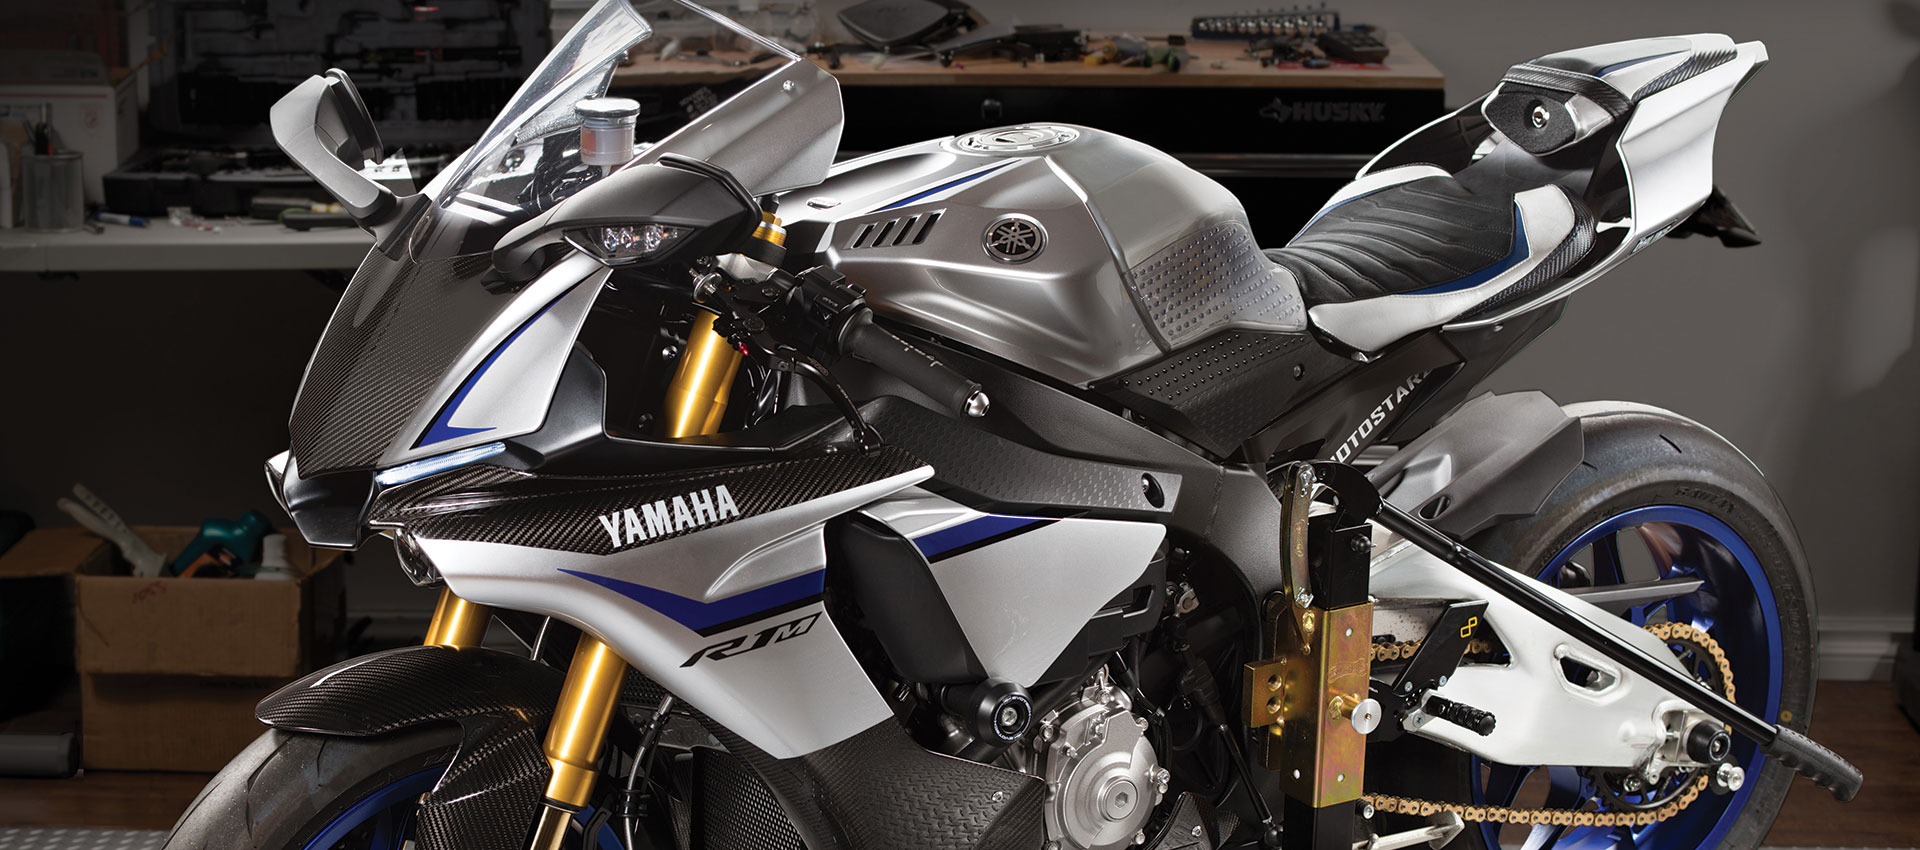 YAMAHA R1 15-18 LUIMOTO PRODUCTS